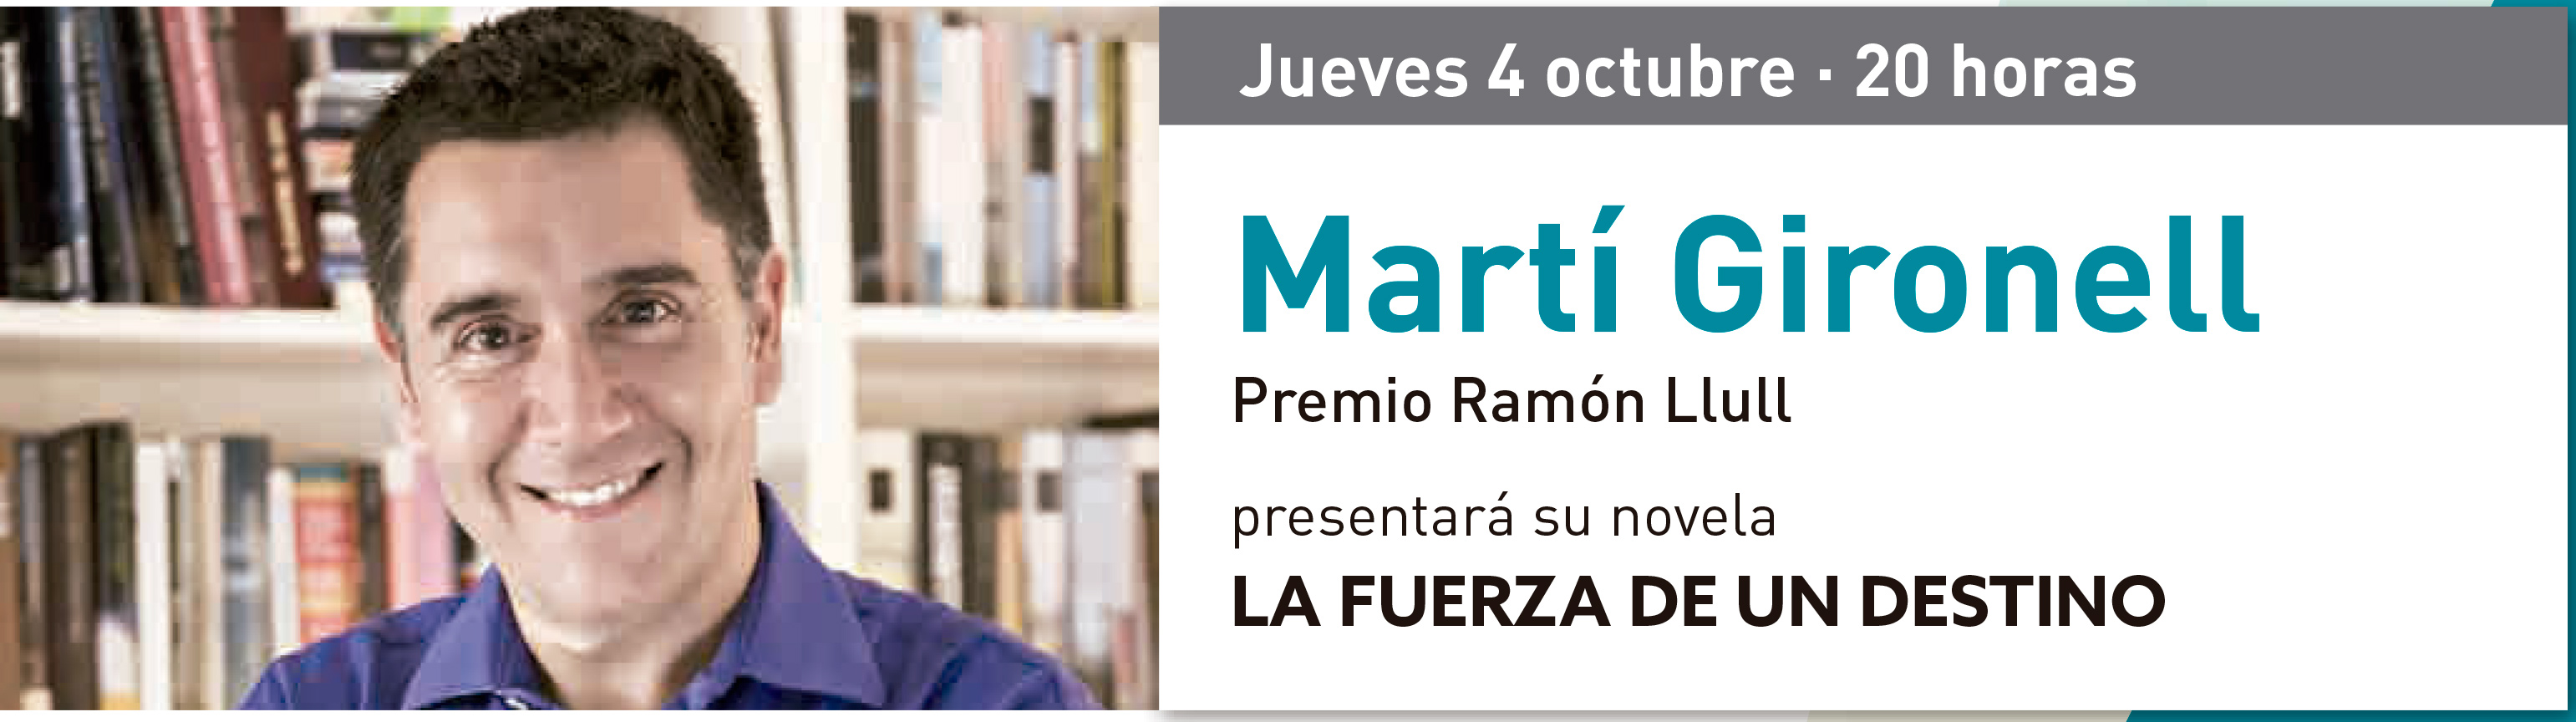 marti-gironell